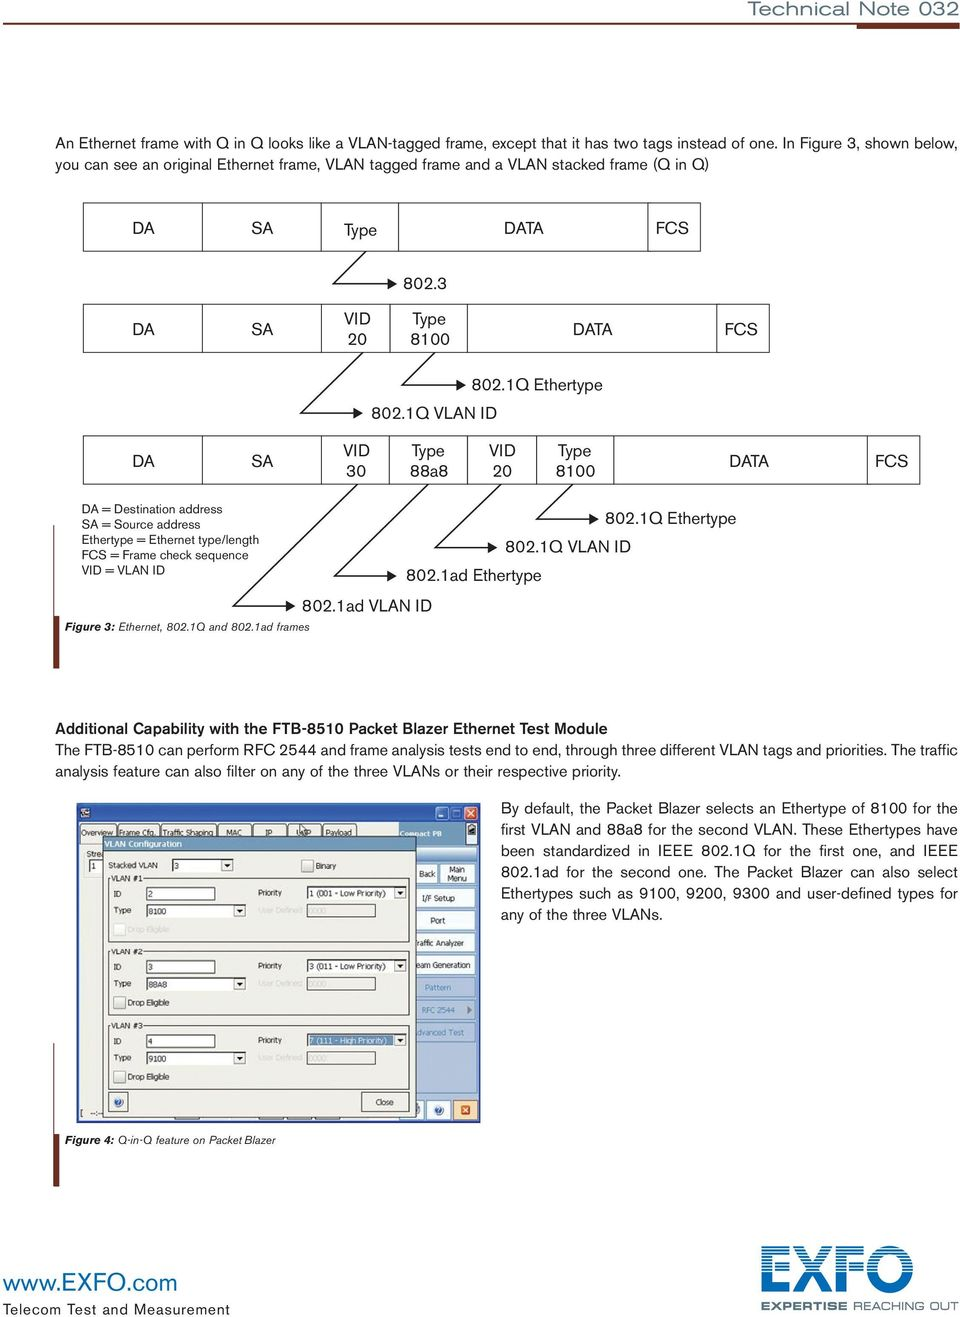 BENEFITS OF VLANs AND Q IN Q - PDF